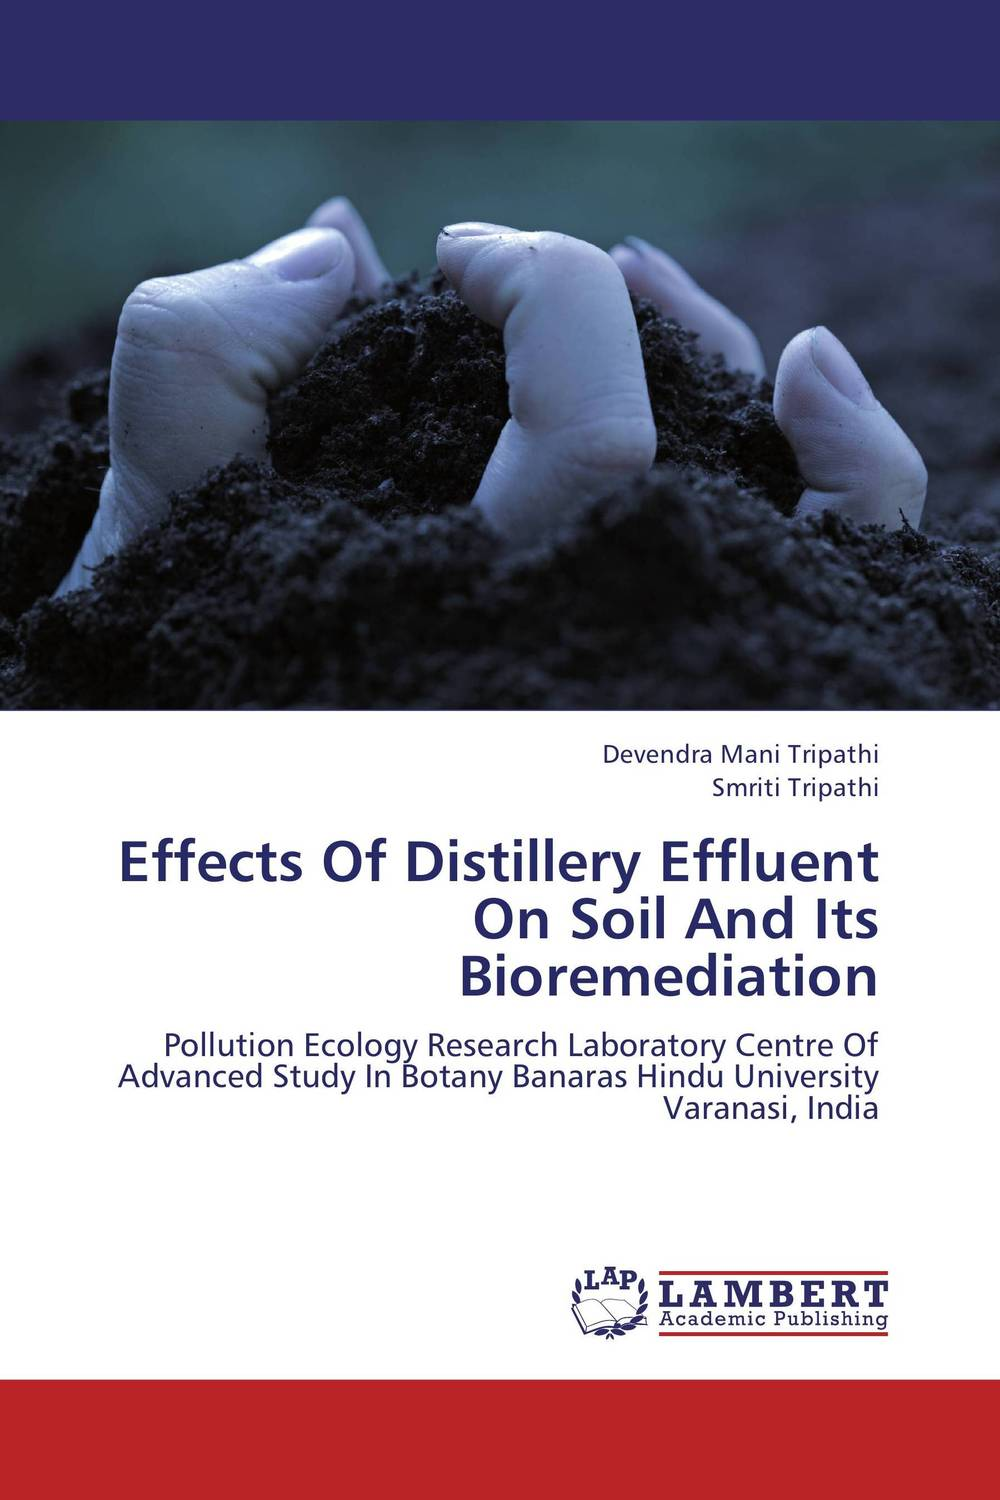 Effects Of Distillery Effluent On Soil And Its Bioremediation genotoxic effects of tannery industry effluent in labeo rohita